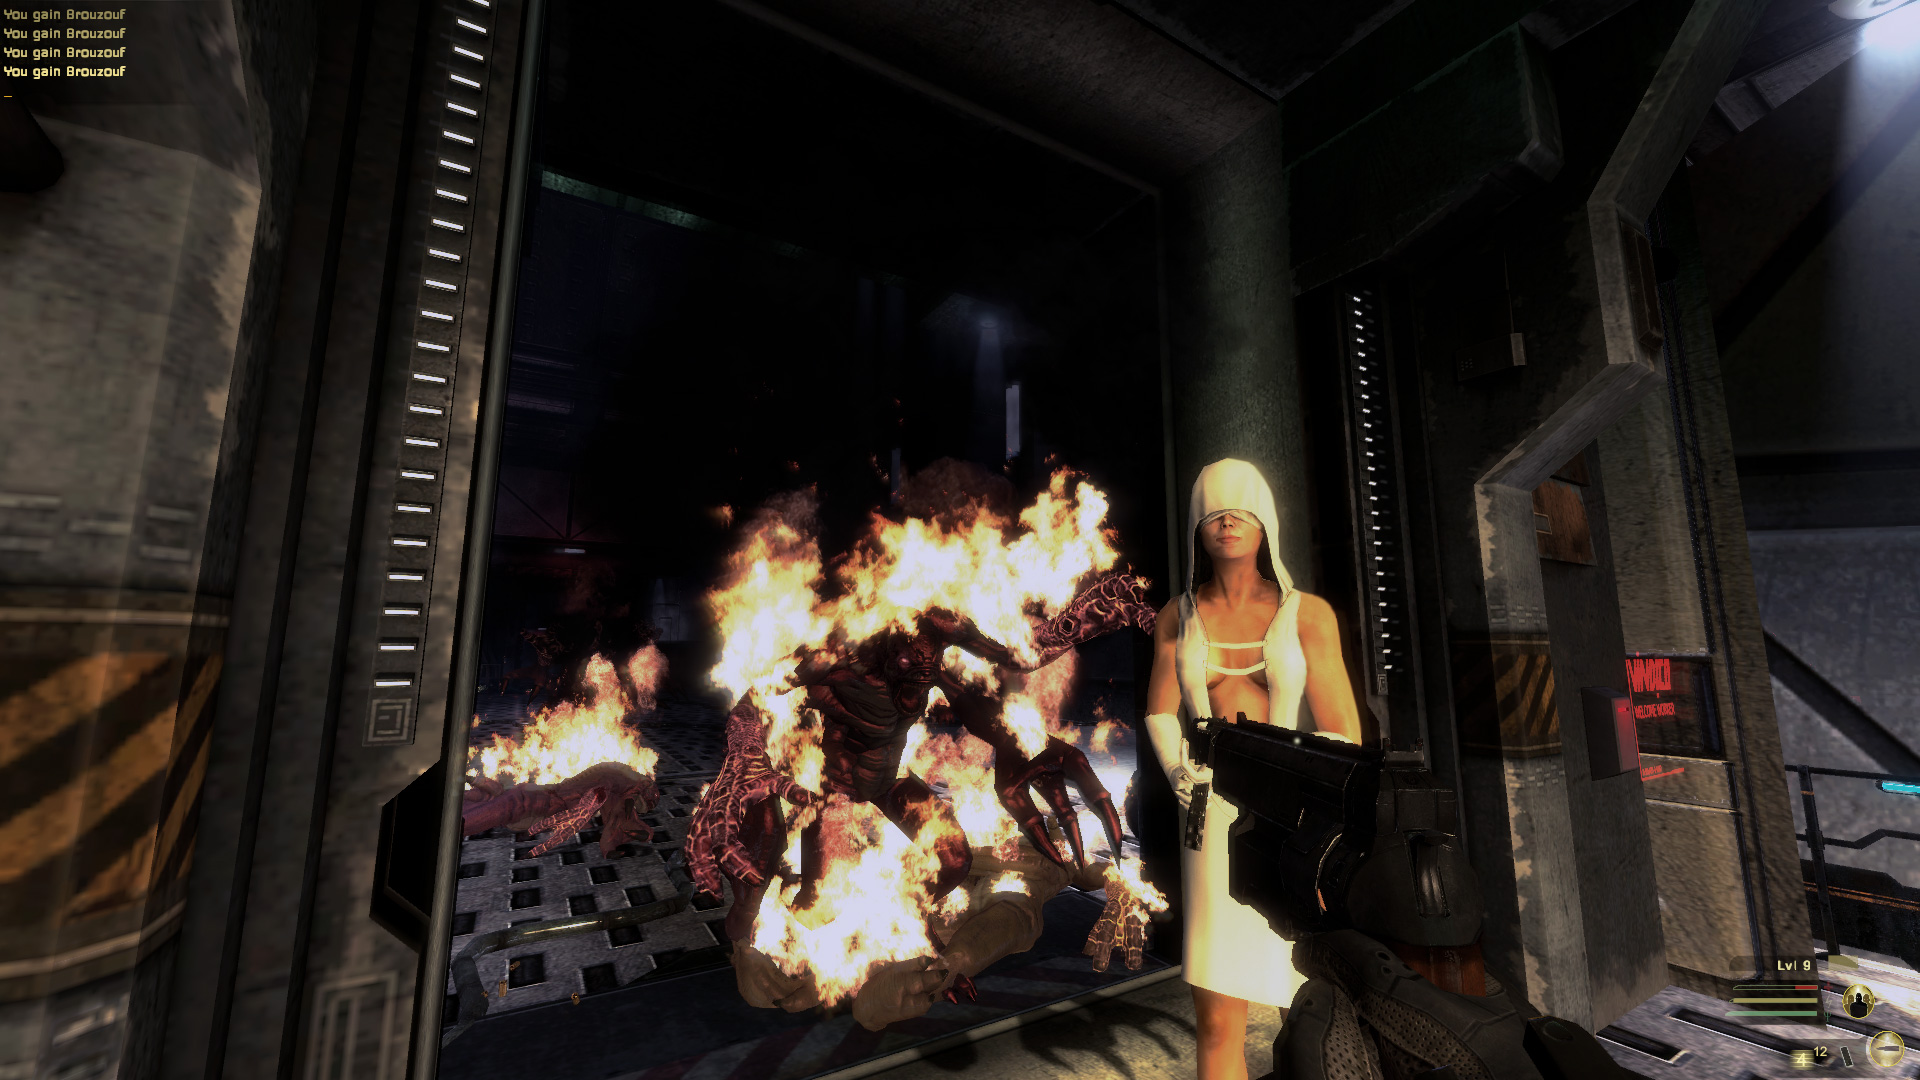 EYE, Dvivine Cybermancy, Nun, Cybernetics, Monster, Fire, Game